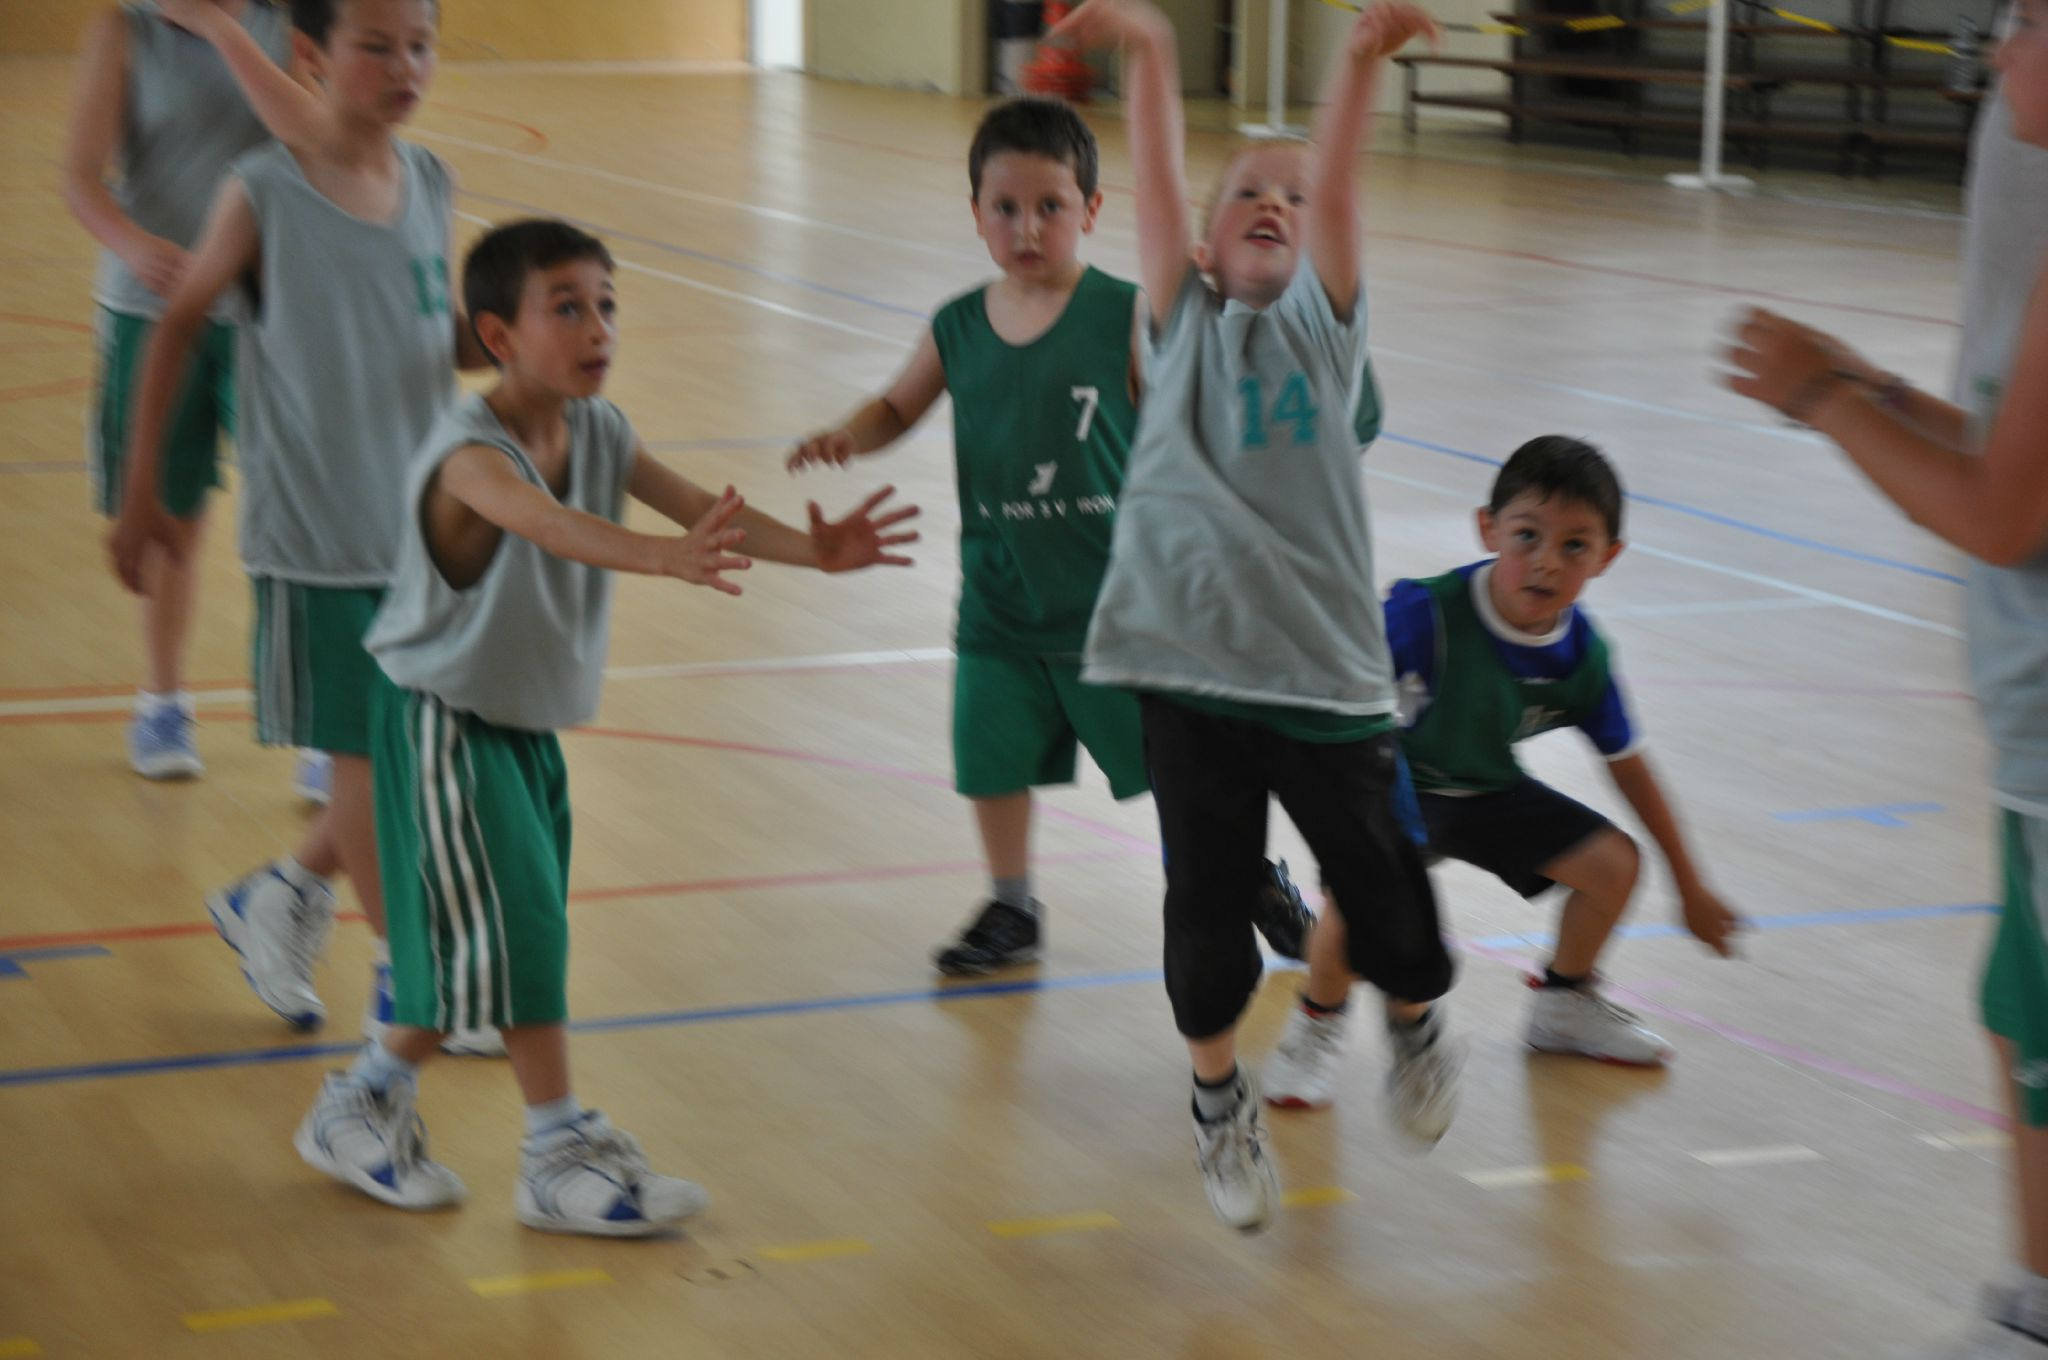 Tournoi Parents Enfants 2012 (1)